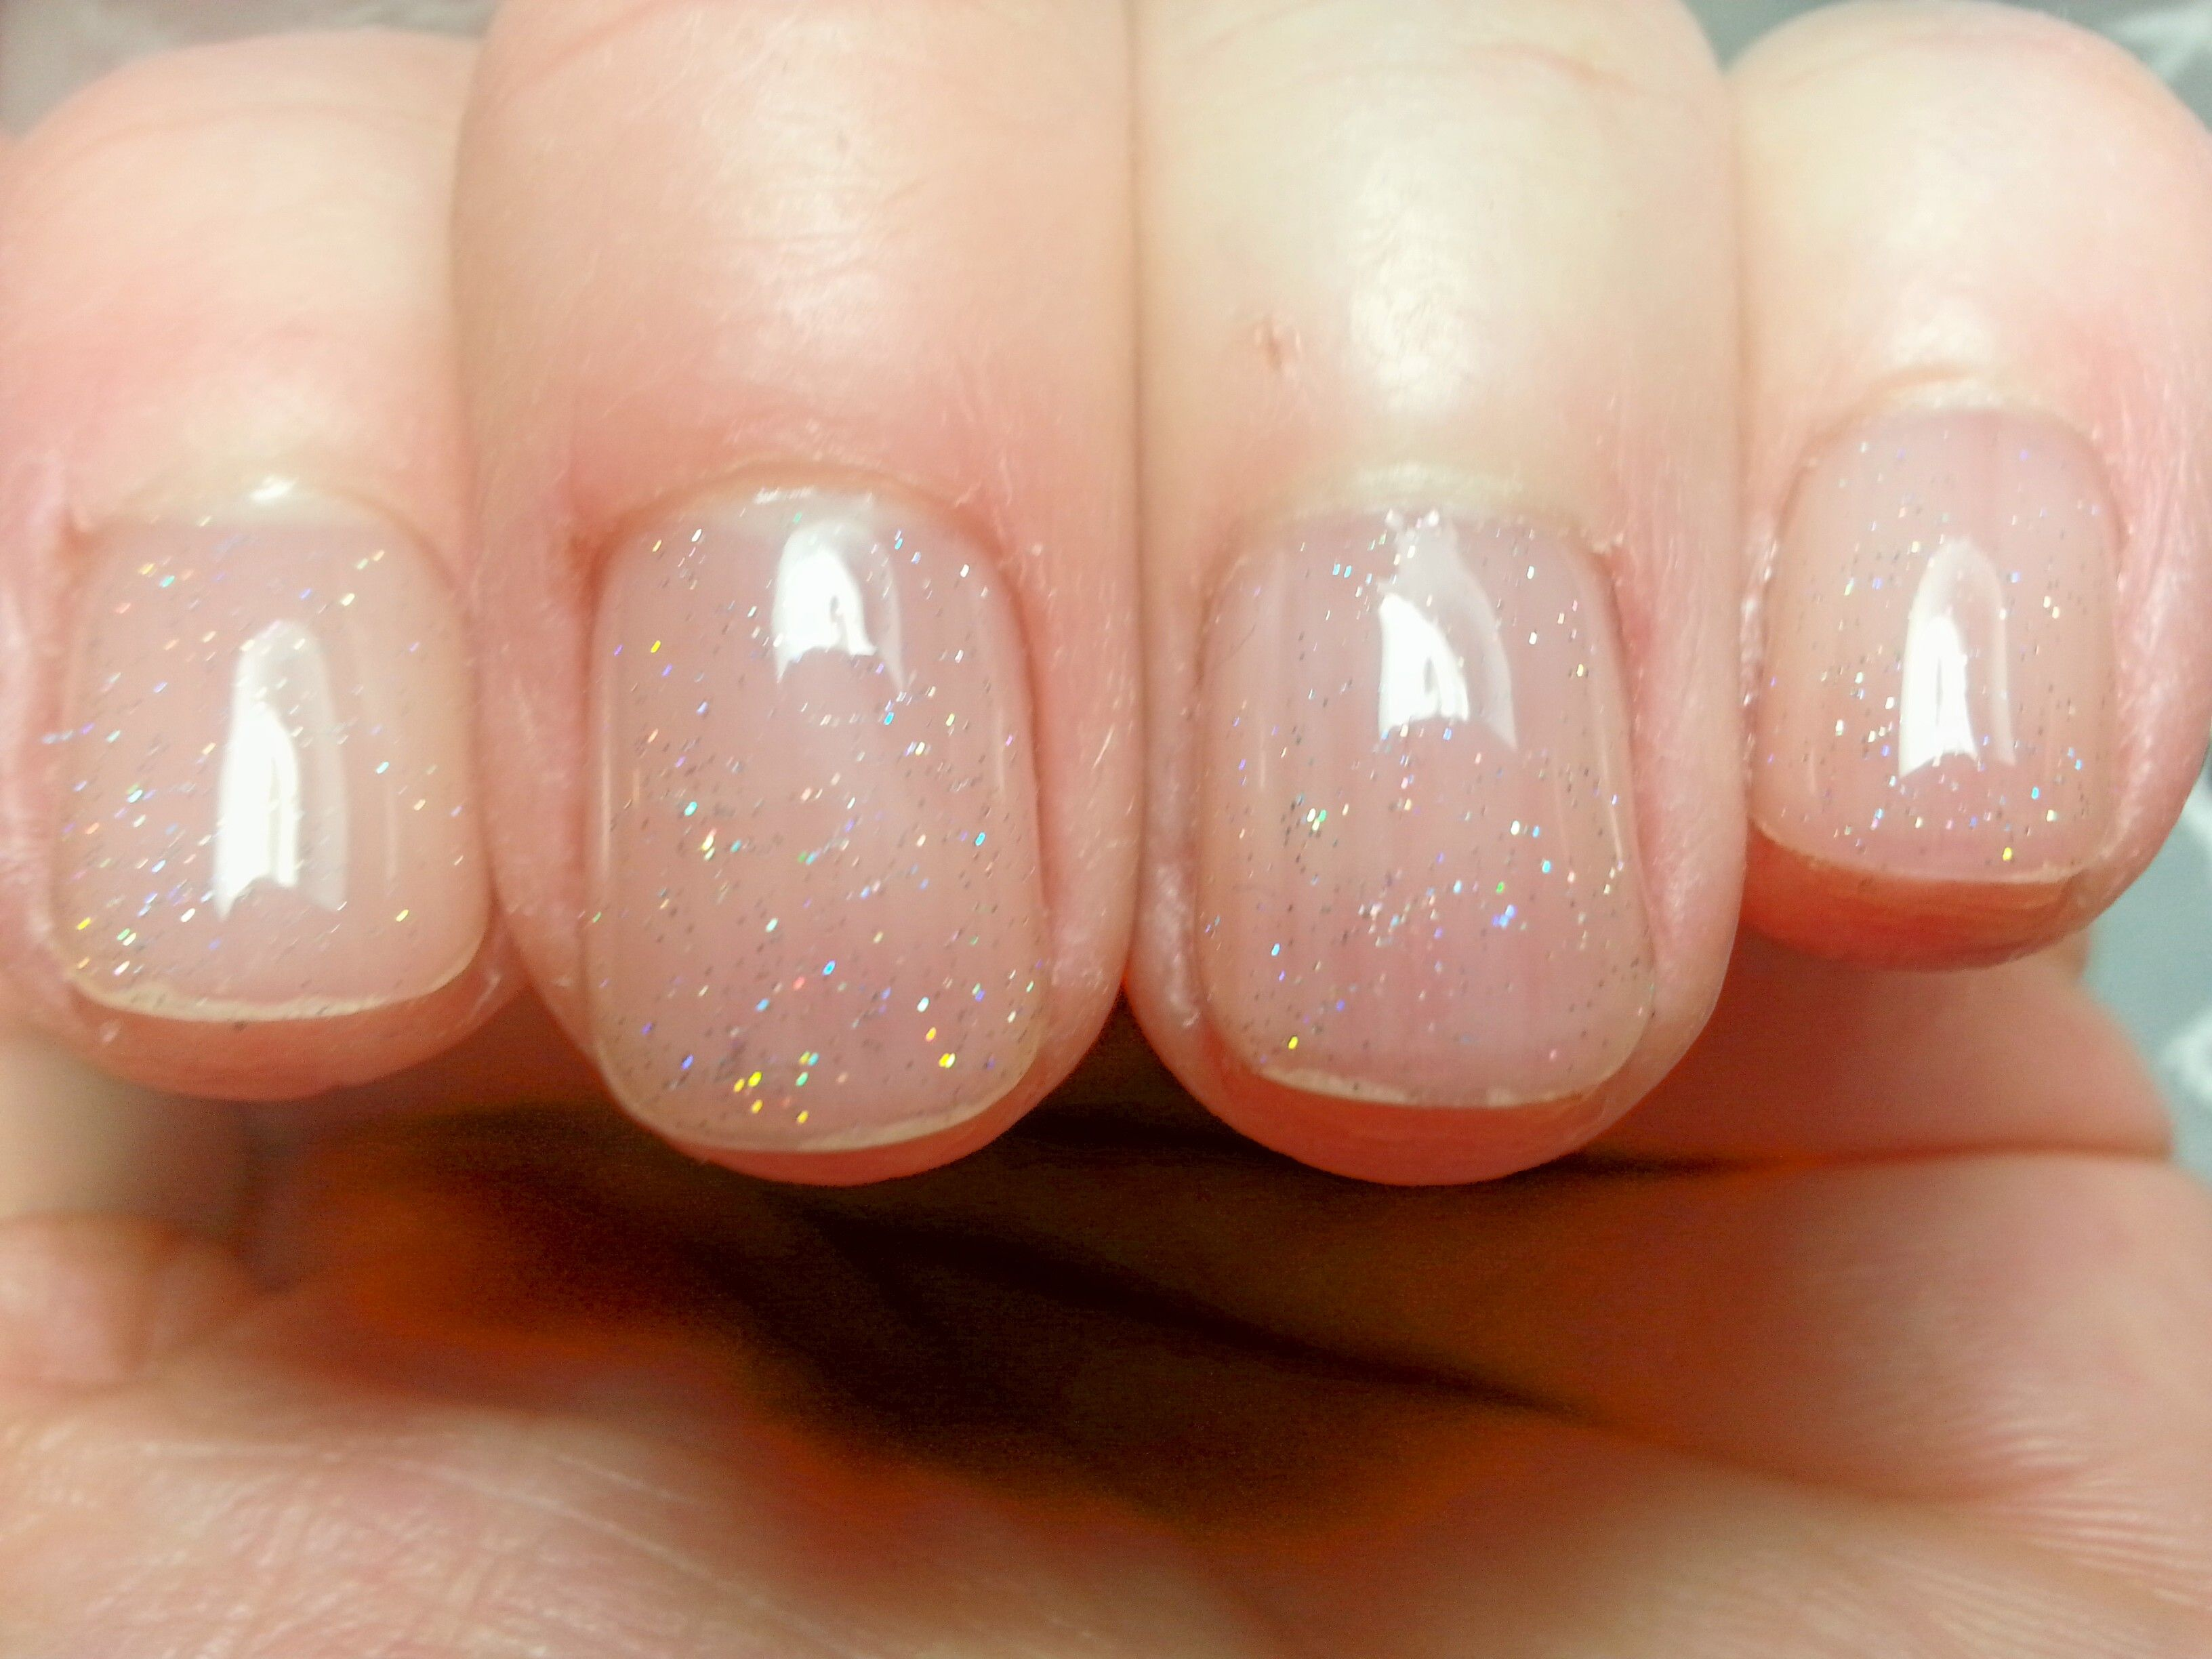 Nails Short Gel Manicure Clear With Just A Touch Of Glitter Adds An Elegant Subtle Touch